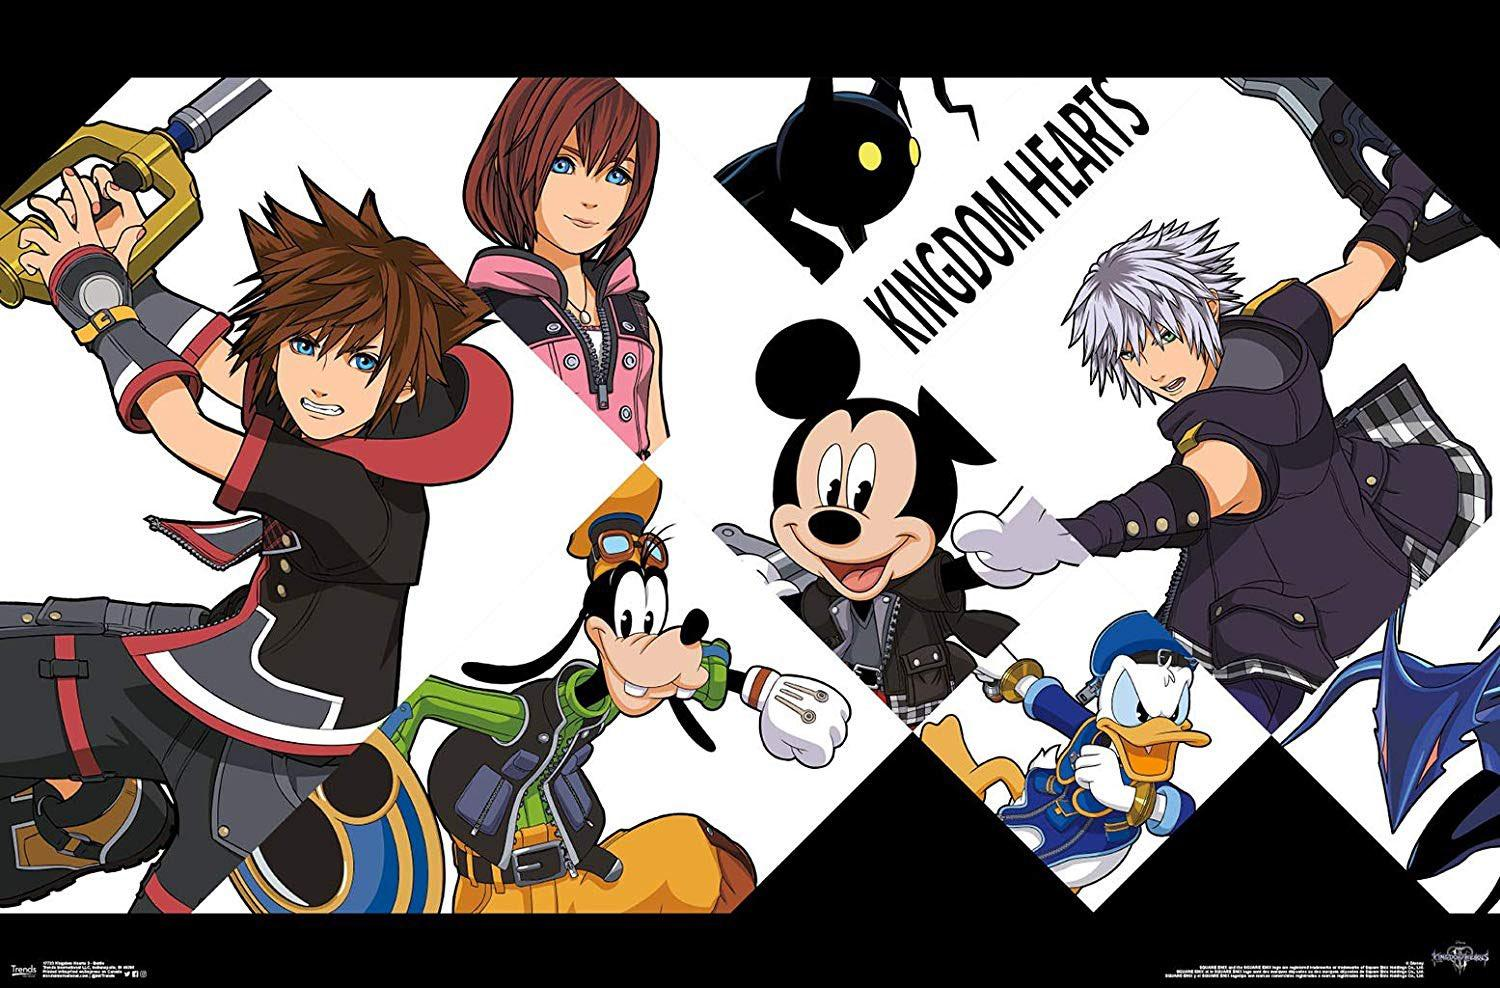 Kh13 S July Merch Round Up Posters Blankets Swimsuits